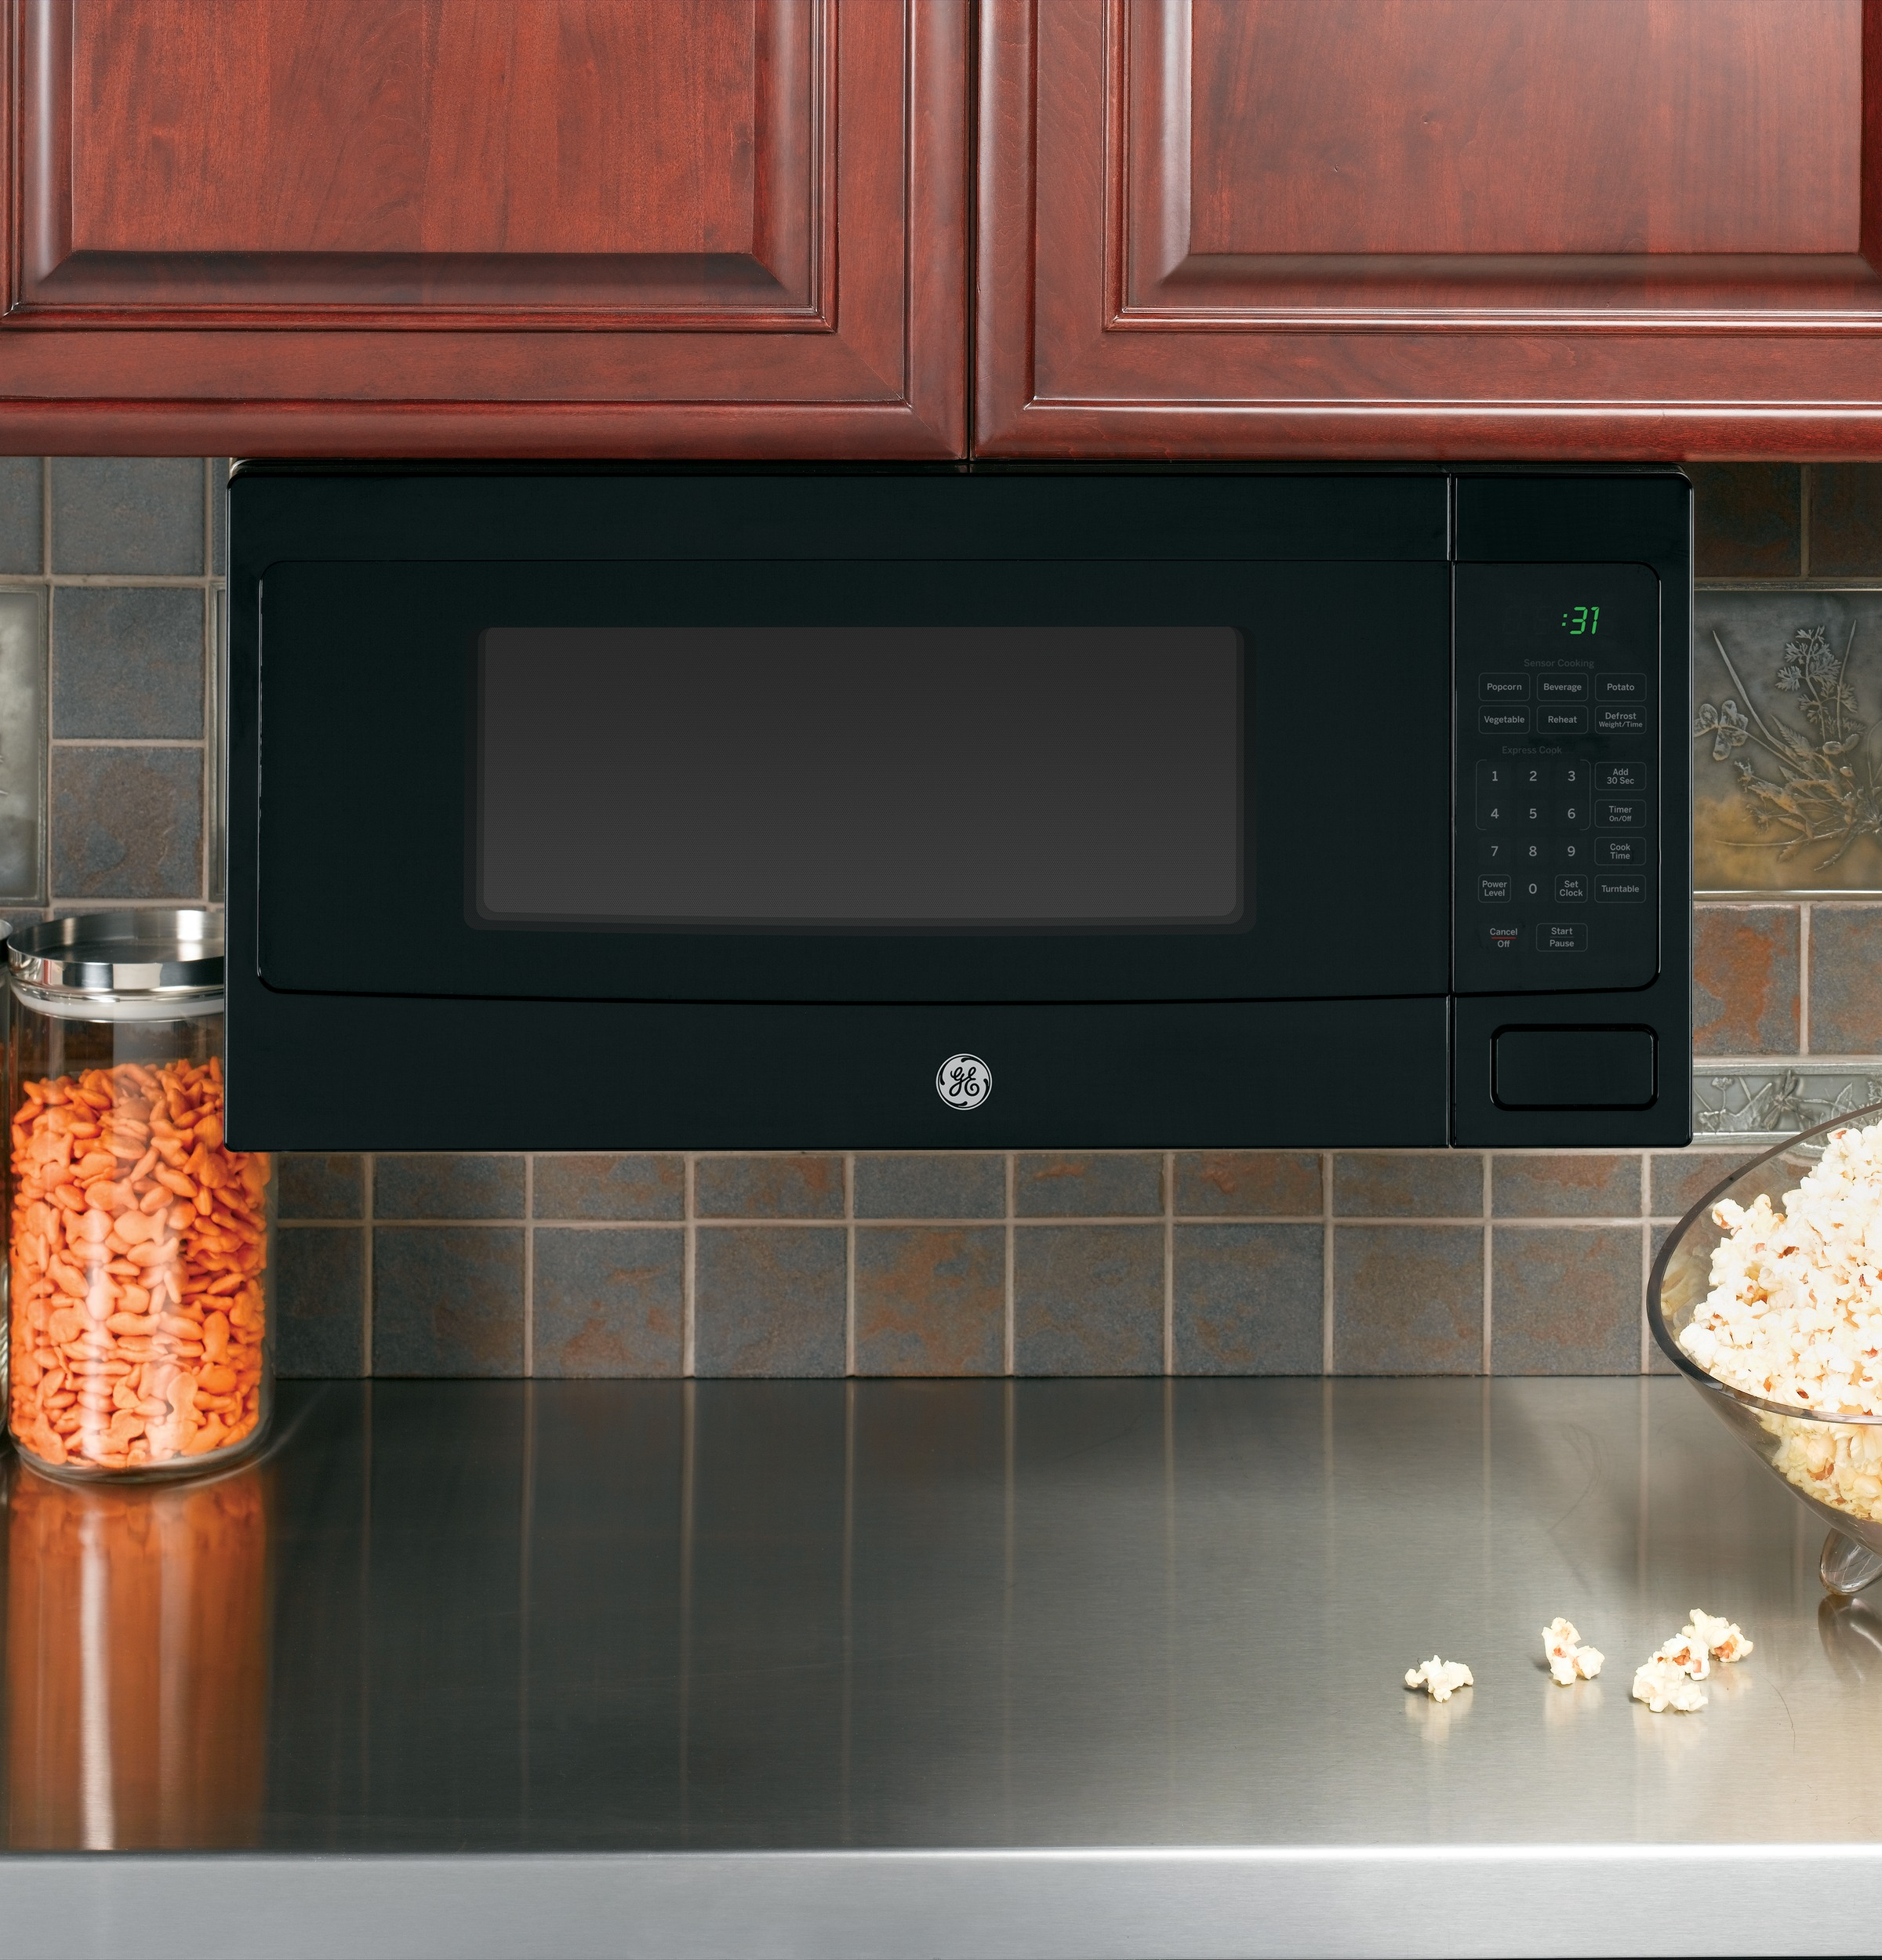 Countertop Warming Drawer Ge Profile Series 1 1 Cu Ft Countertop Microwave Oven